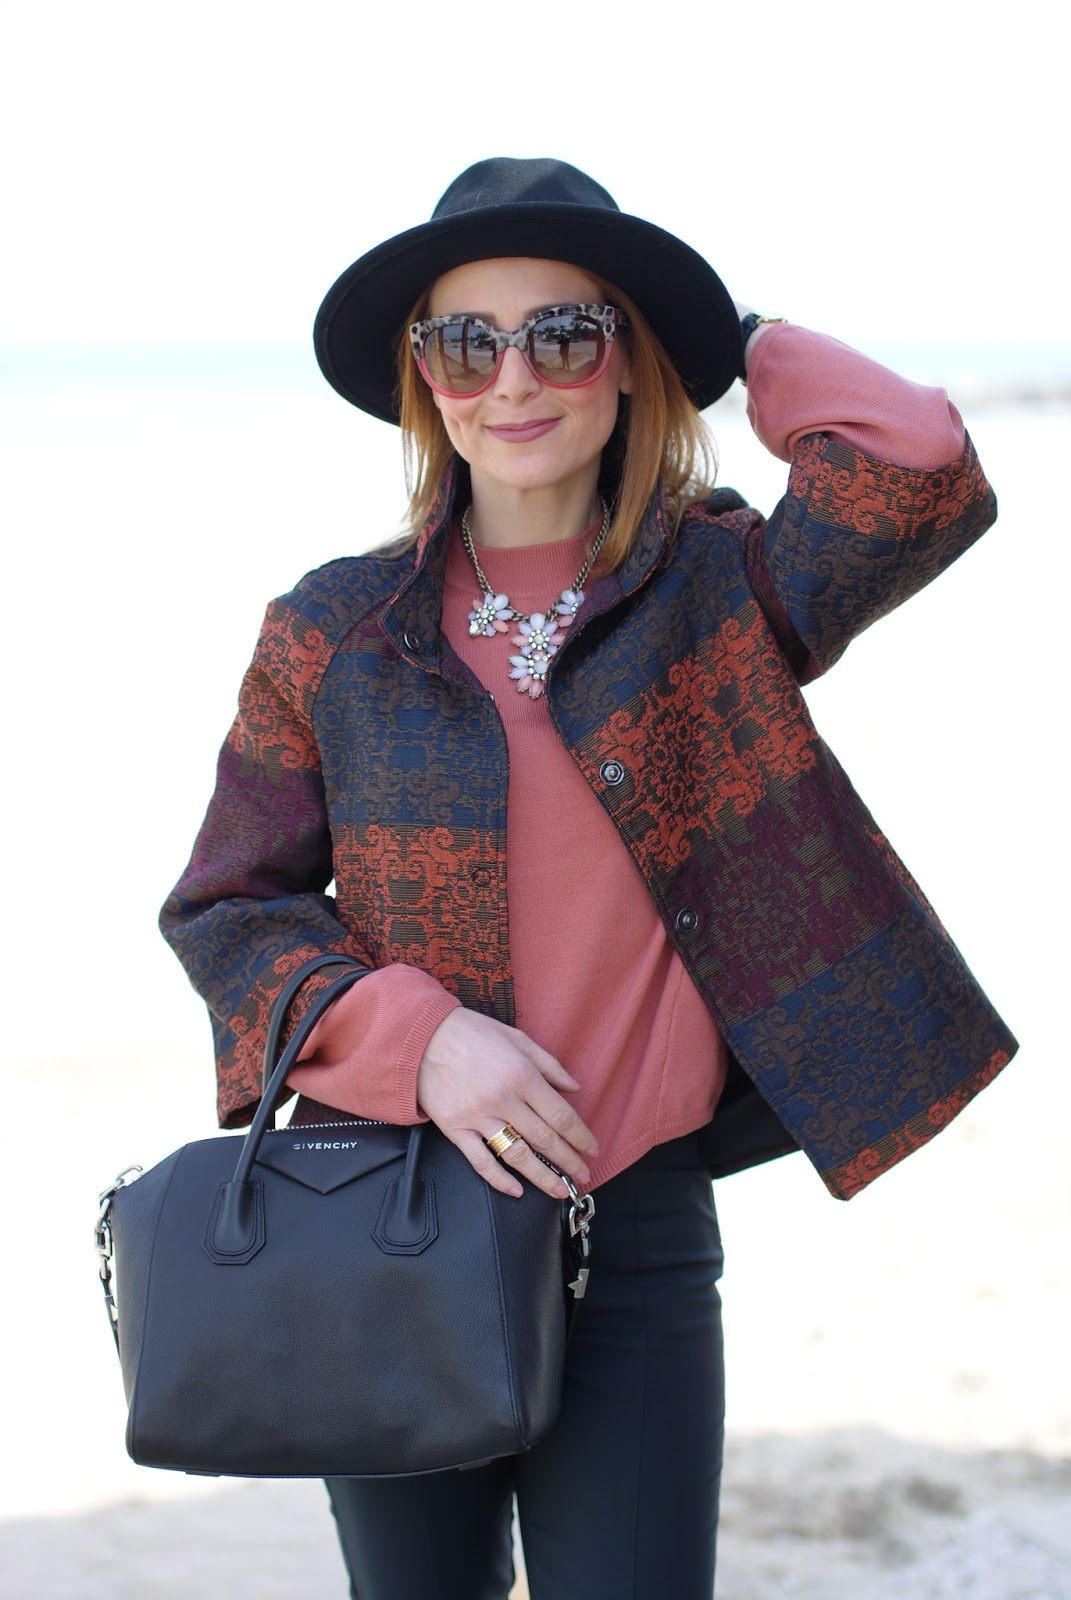 Dani giacca, Givenchy Antigona bag on Fashion and Cookies fashion blog, fashion blogger style